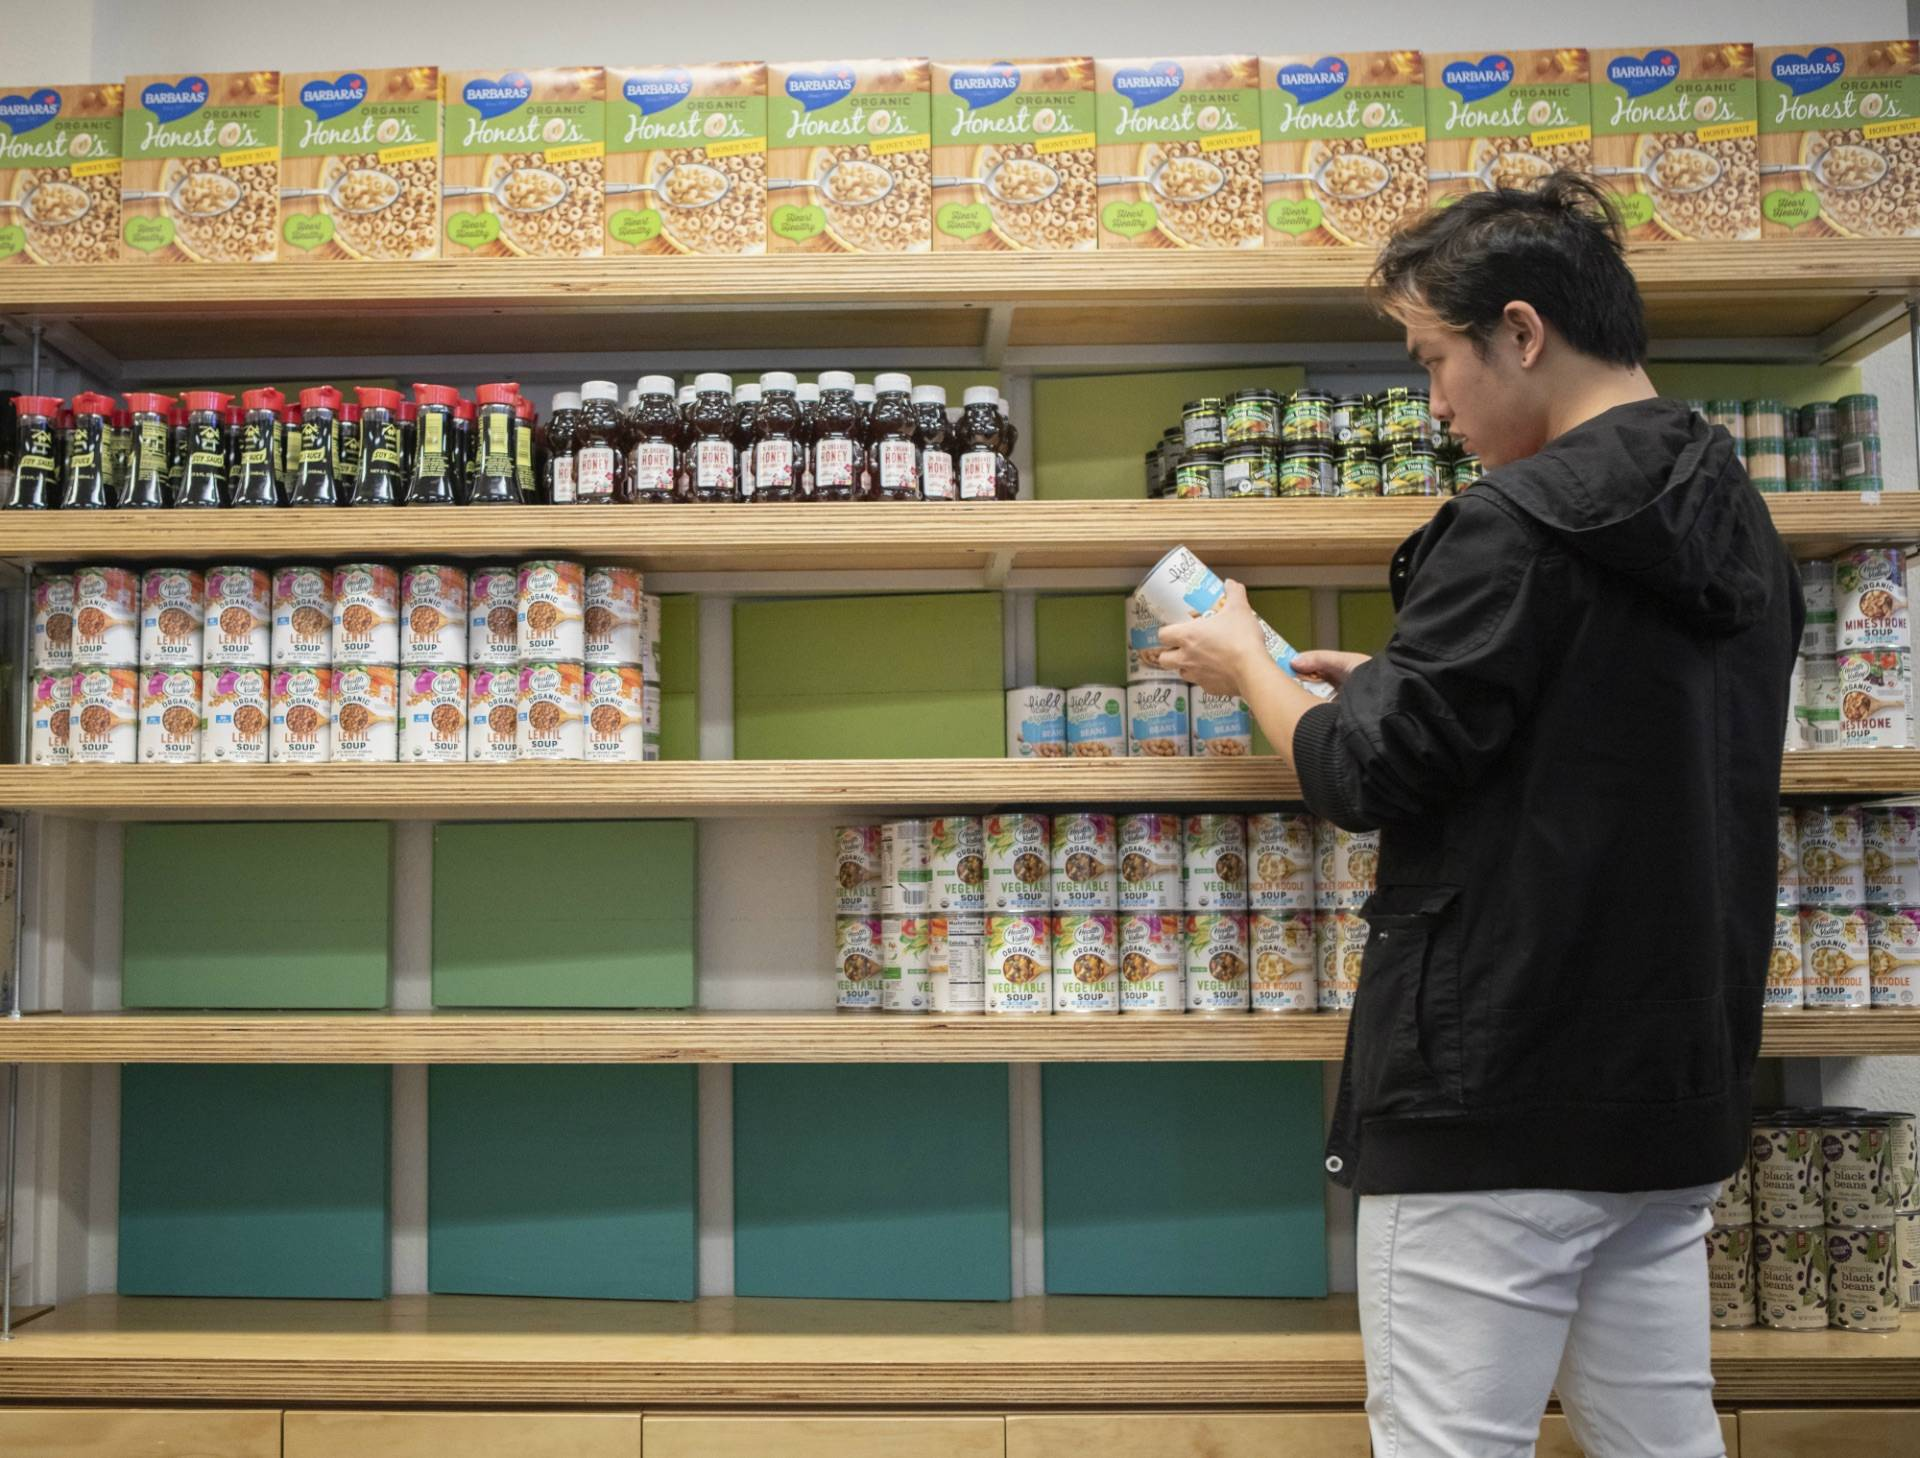 Student volunteer Yongjie He restocks shelves with canned goods at the UC Berkeley campus food pantry.  Anne Wernikoff for CalMatters